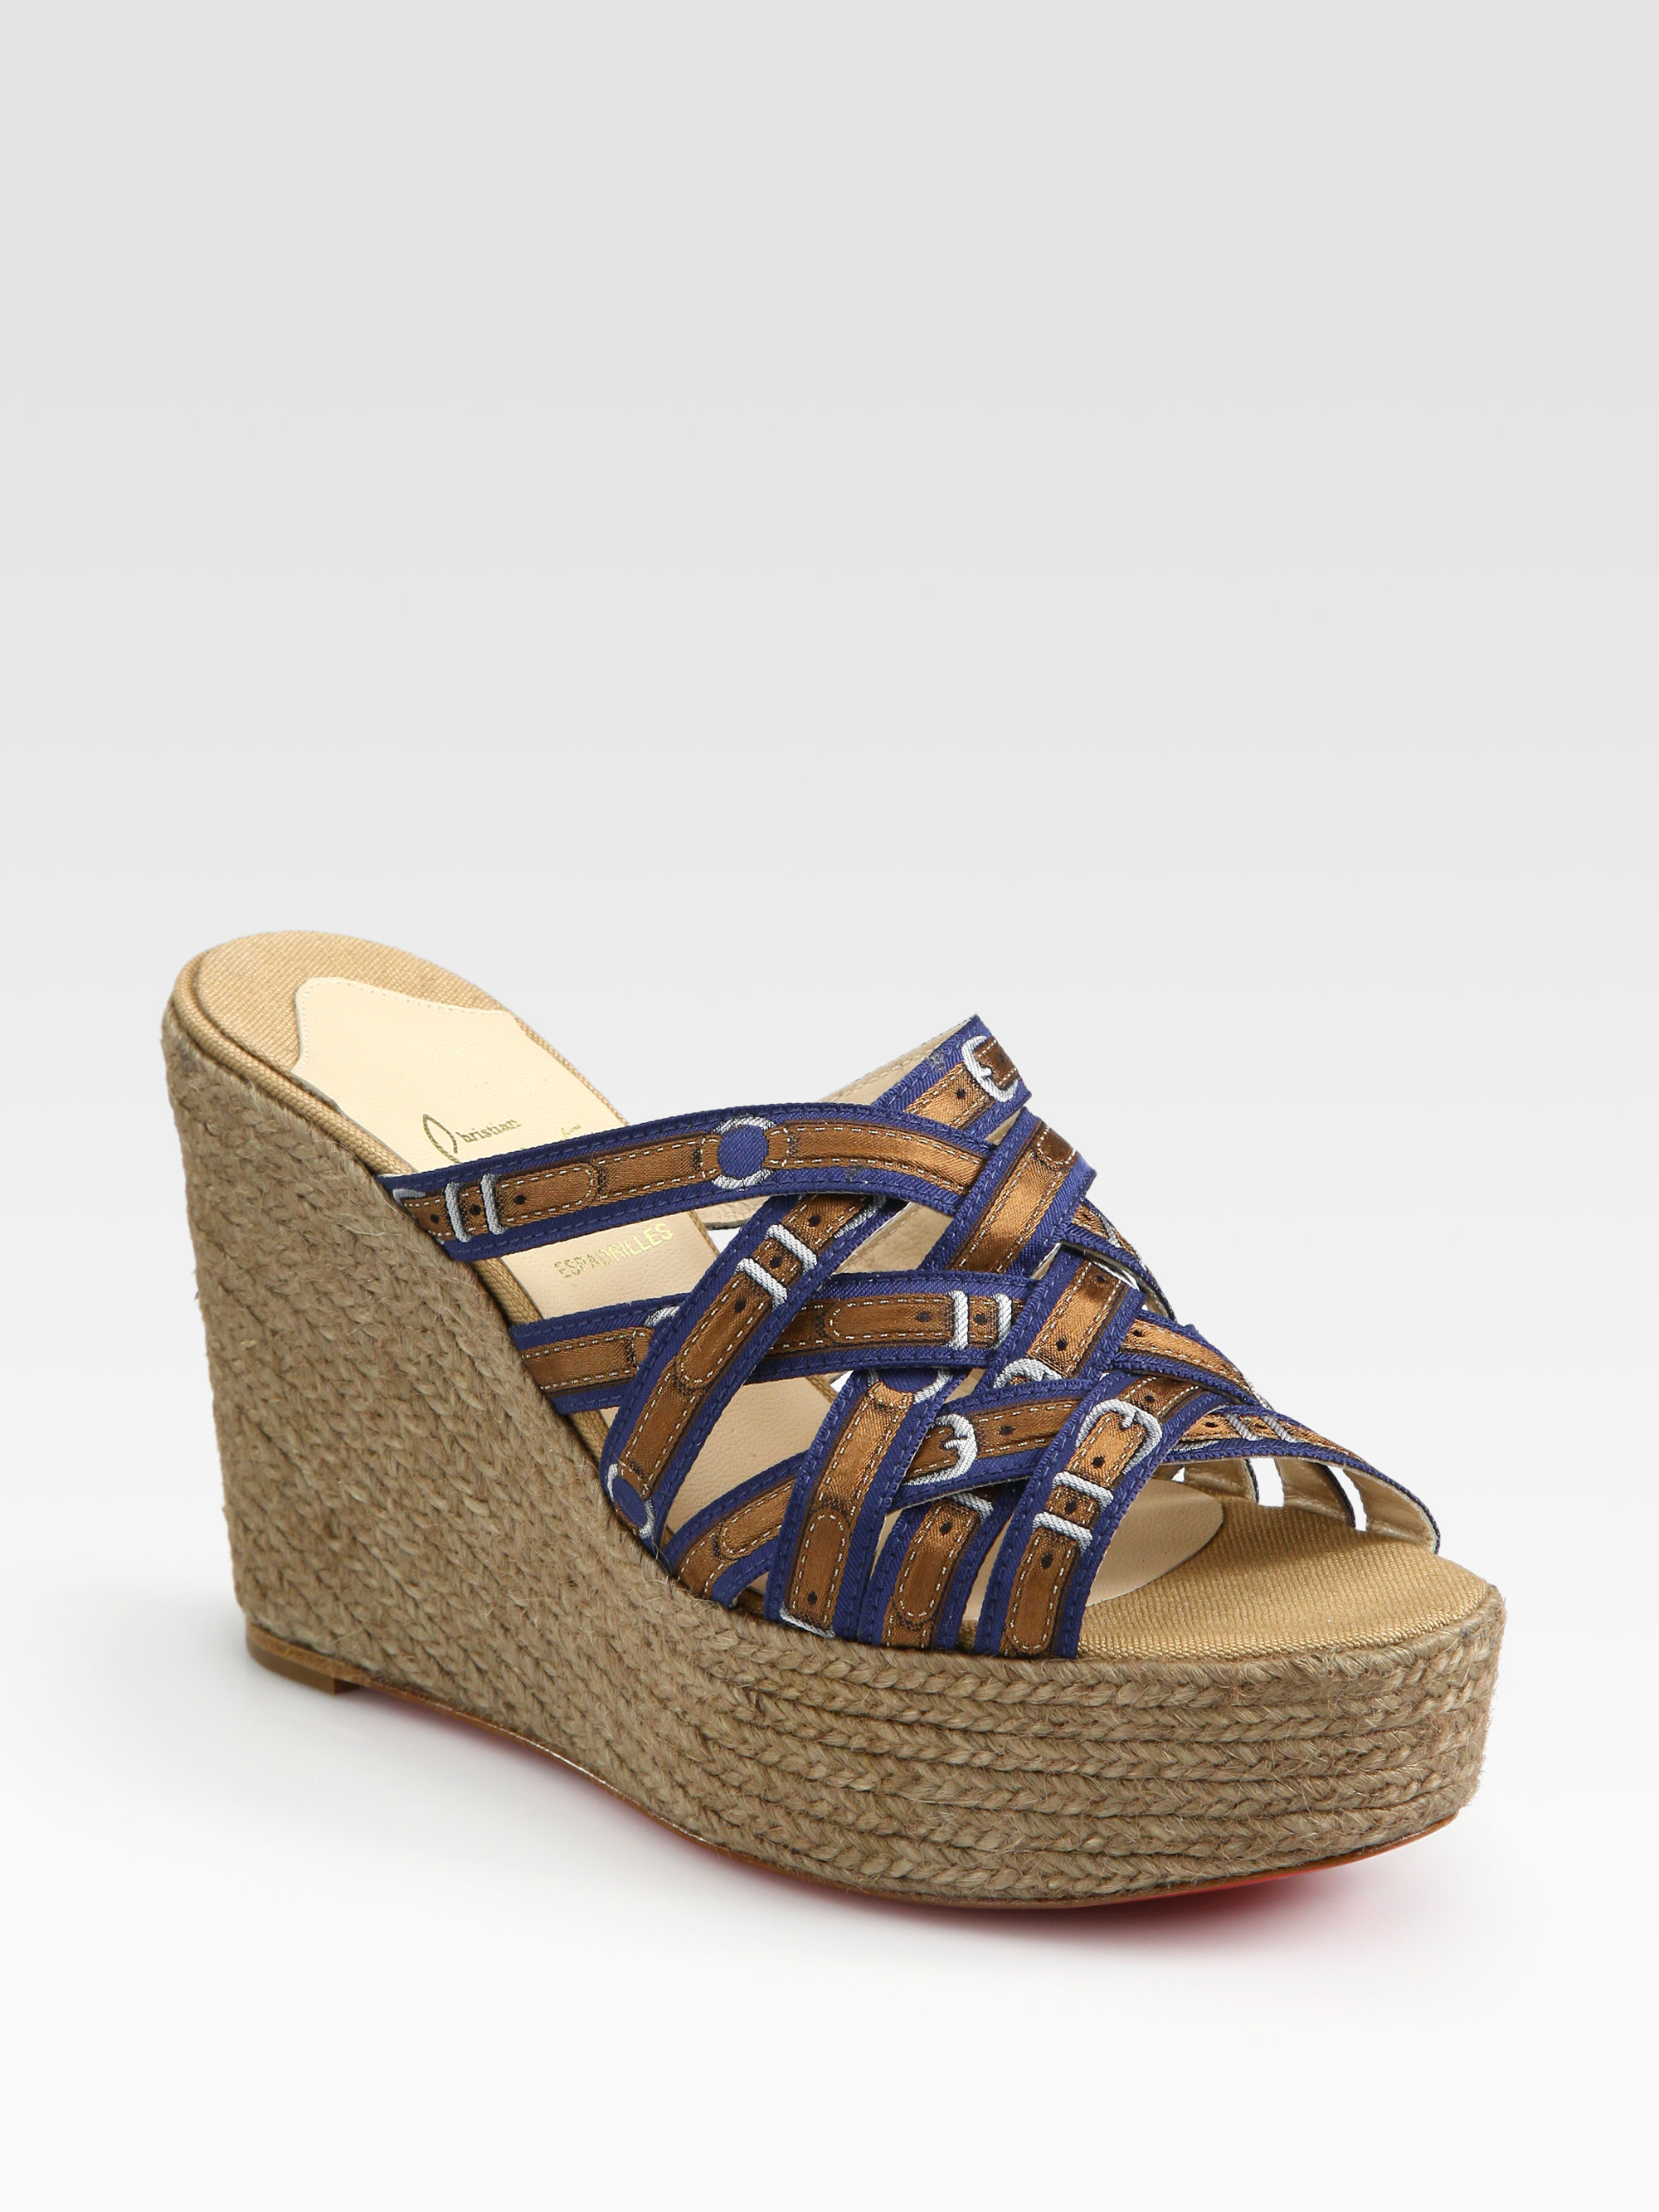 lyst christian louboutin crepon silk espadrille wedge sandals in brown rh lyst com